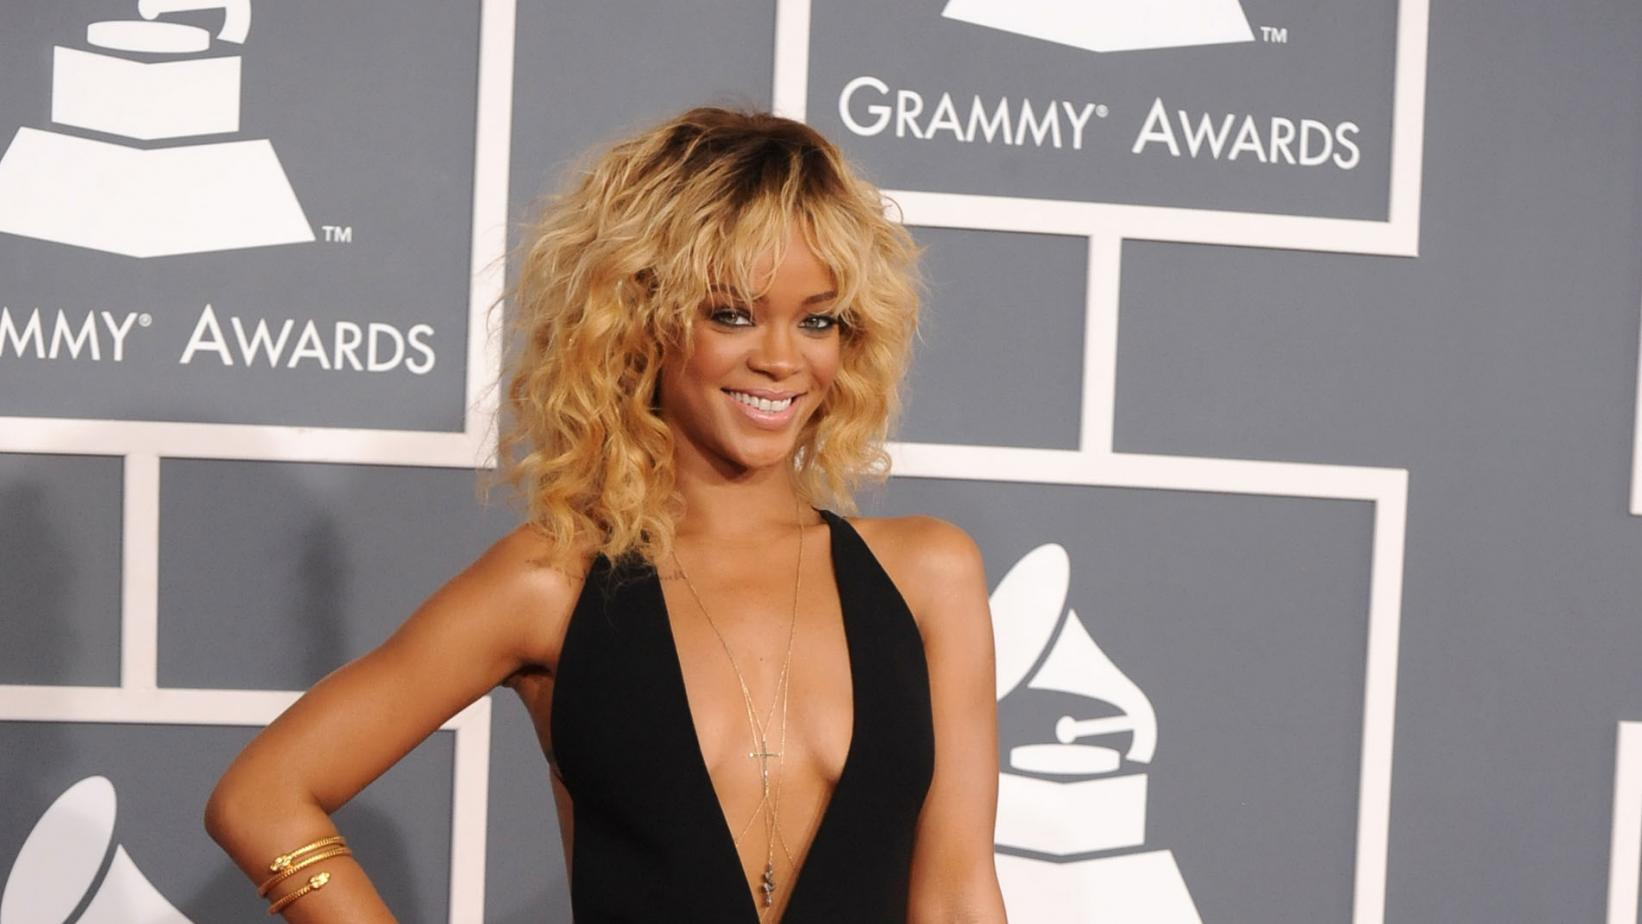 Rihanna, 55th GRAMMYs performer